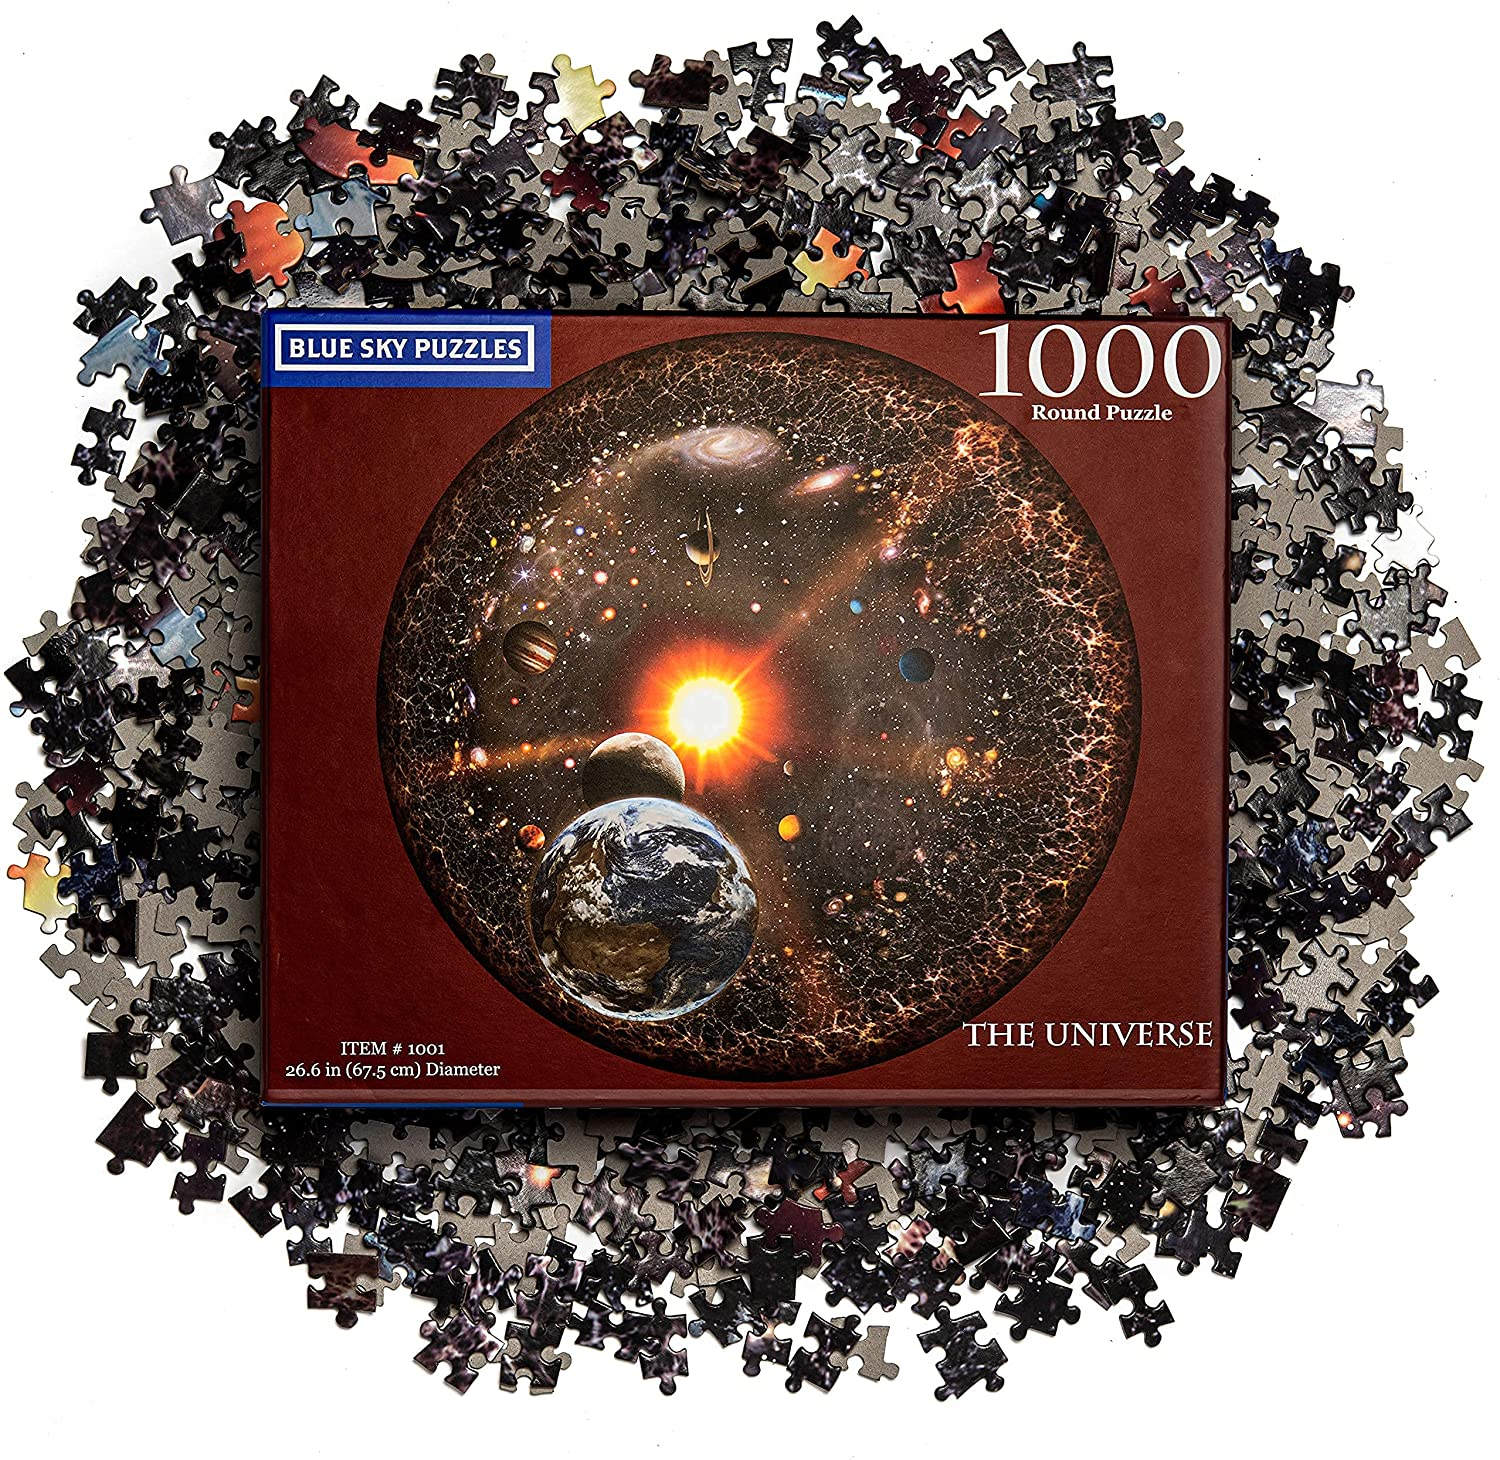 Blue Sky Puzzles 1000 Piece Round Space Jigsaw Puzzle for Adults